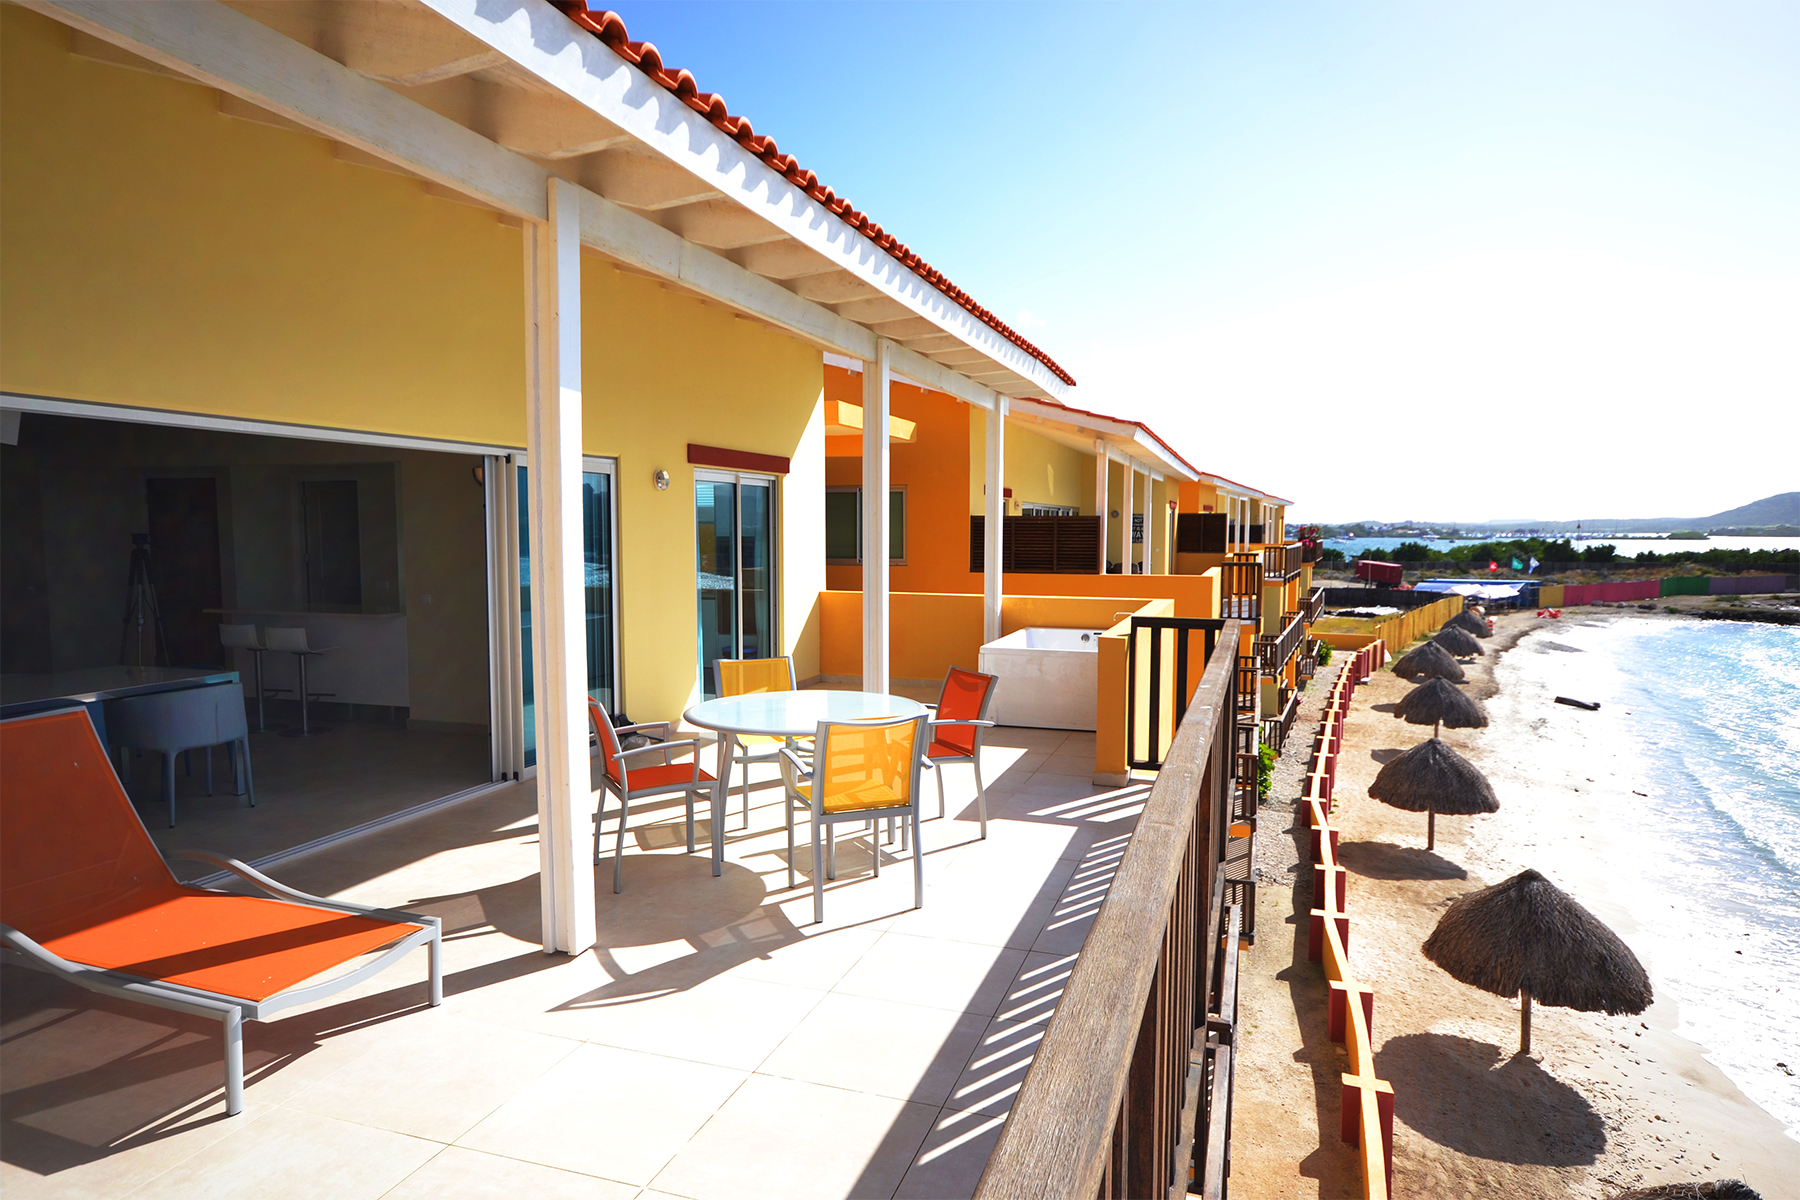 Additional photo for property listing at La Palapa Penthouse Other Cities In Curacao, Cities In Curacao Curacao